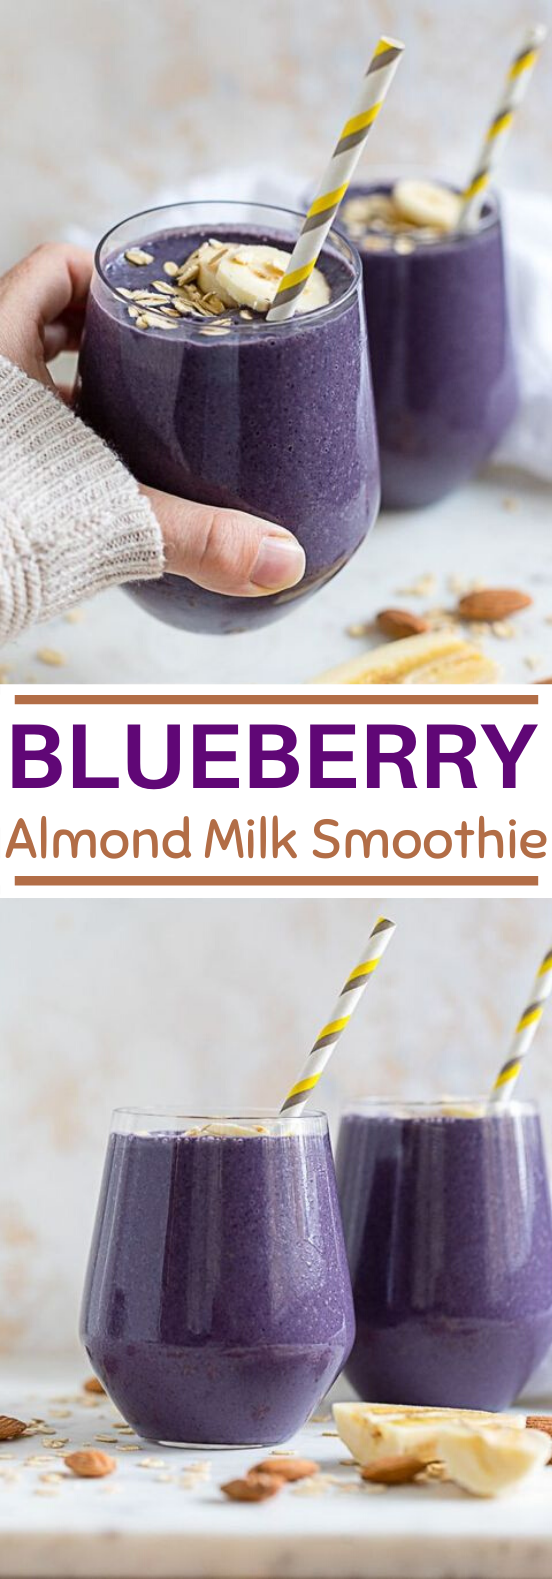 Blueberry Almond Milk Smoothie #drink #healthy #smoothies #breakfast #snacks